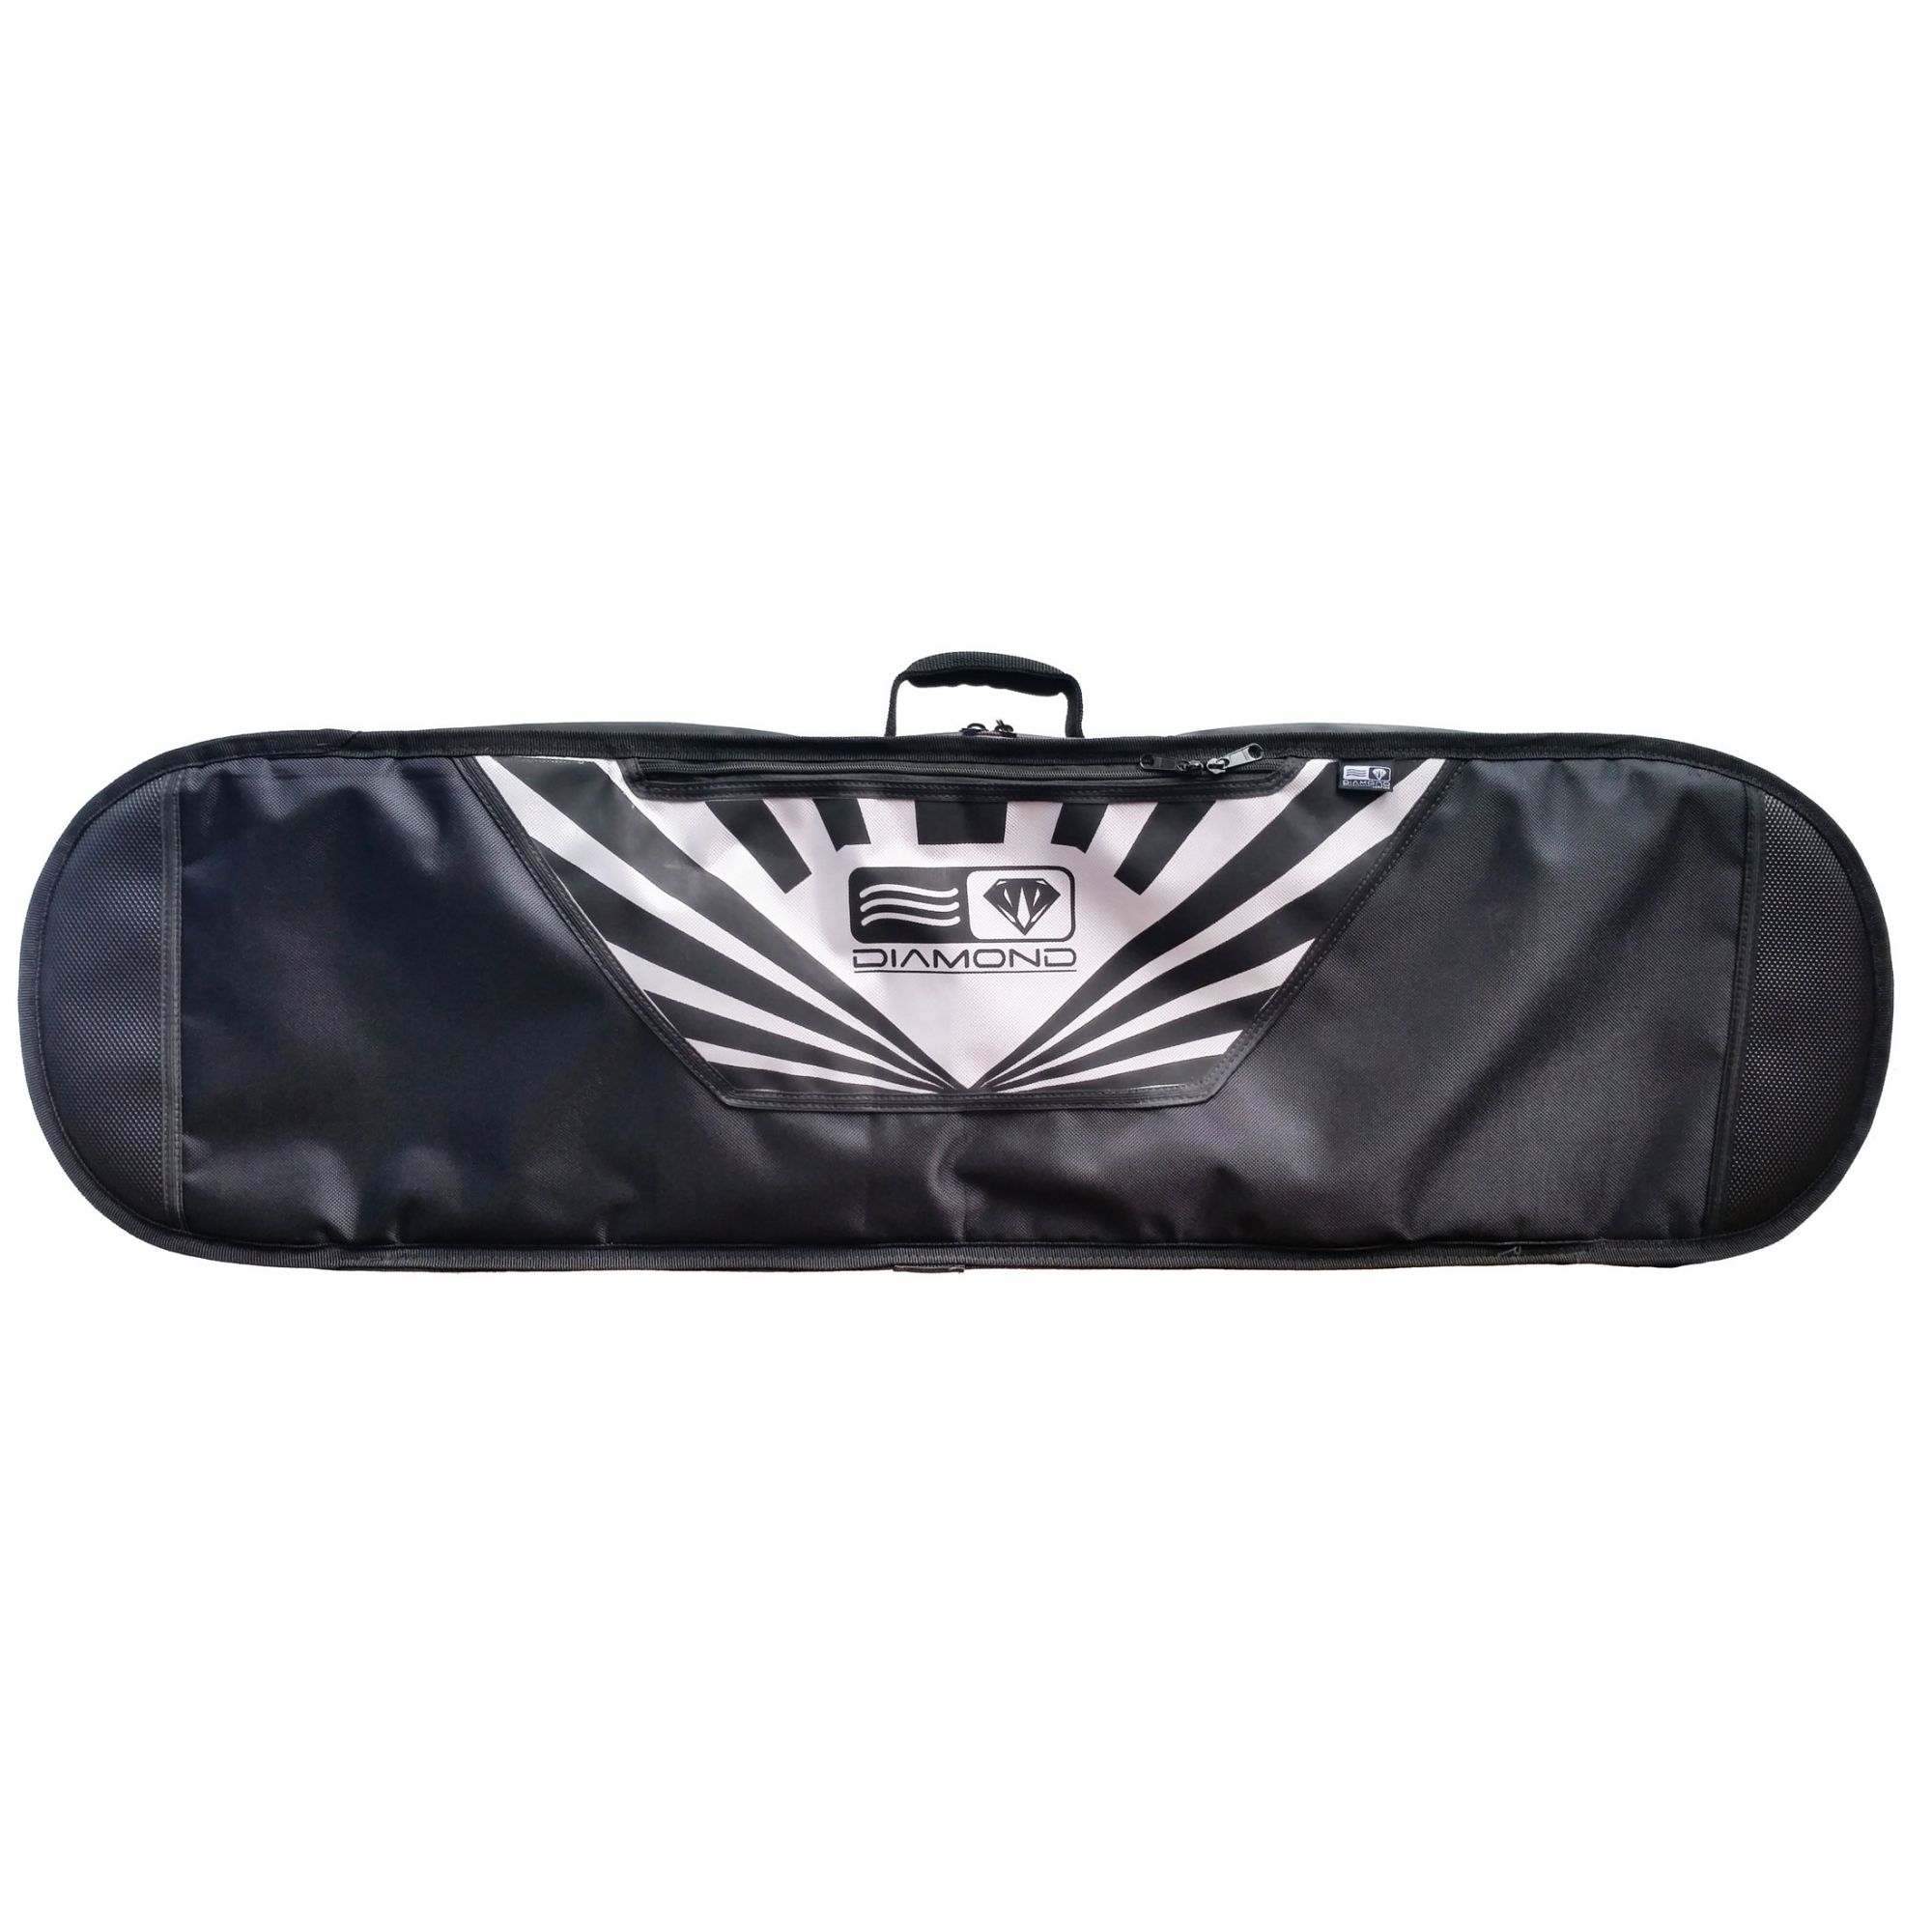 Capa Skate Bag Longboard 105cm x 30cm Diamond Surfing